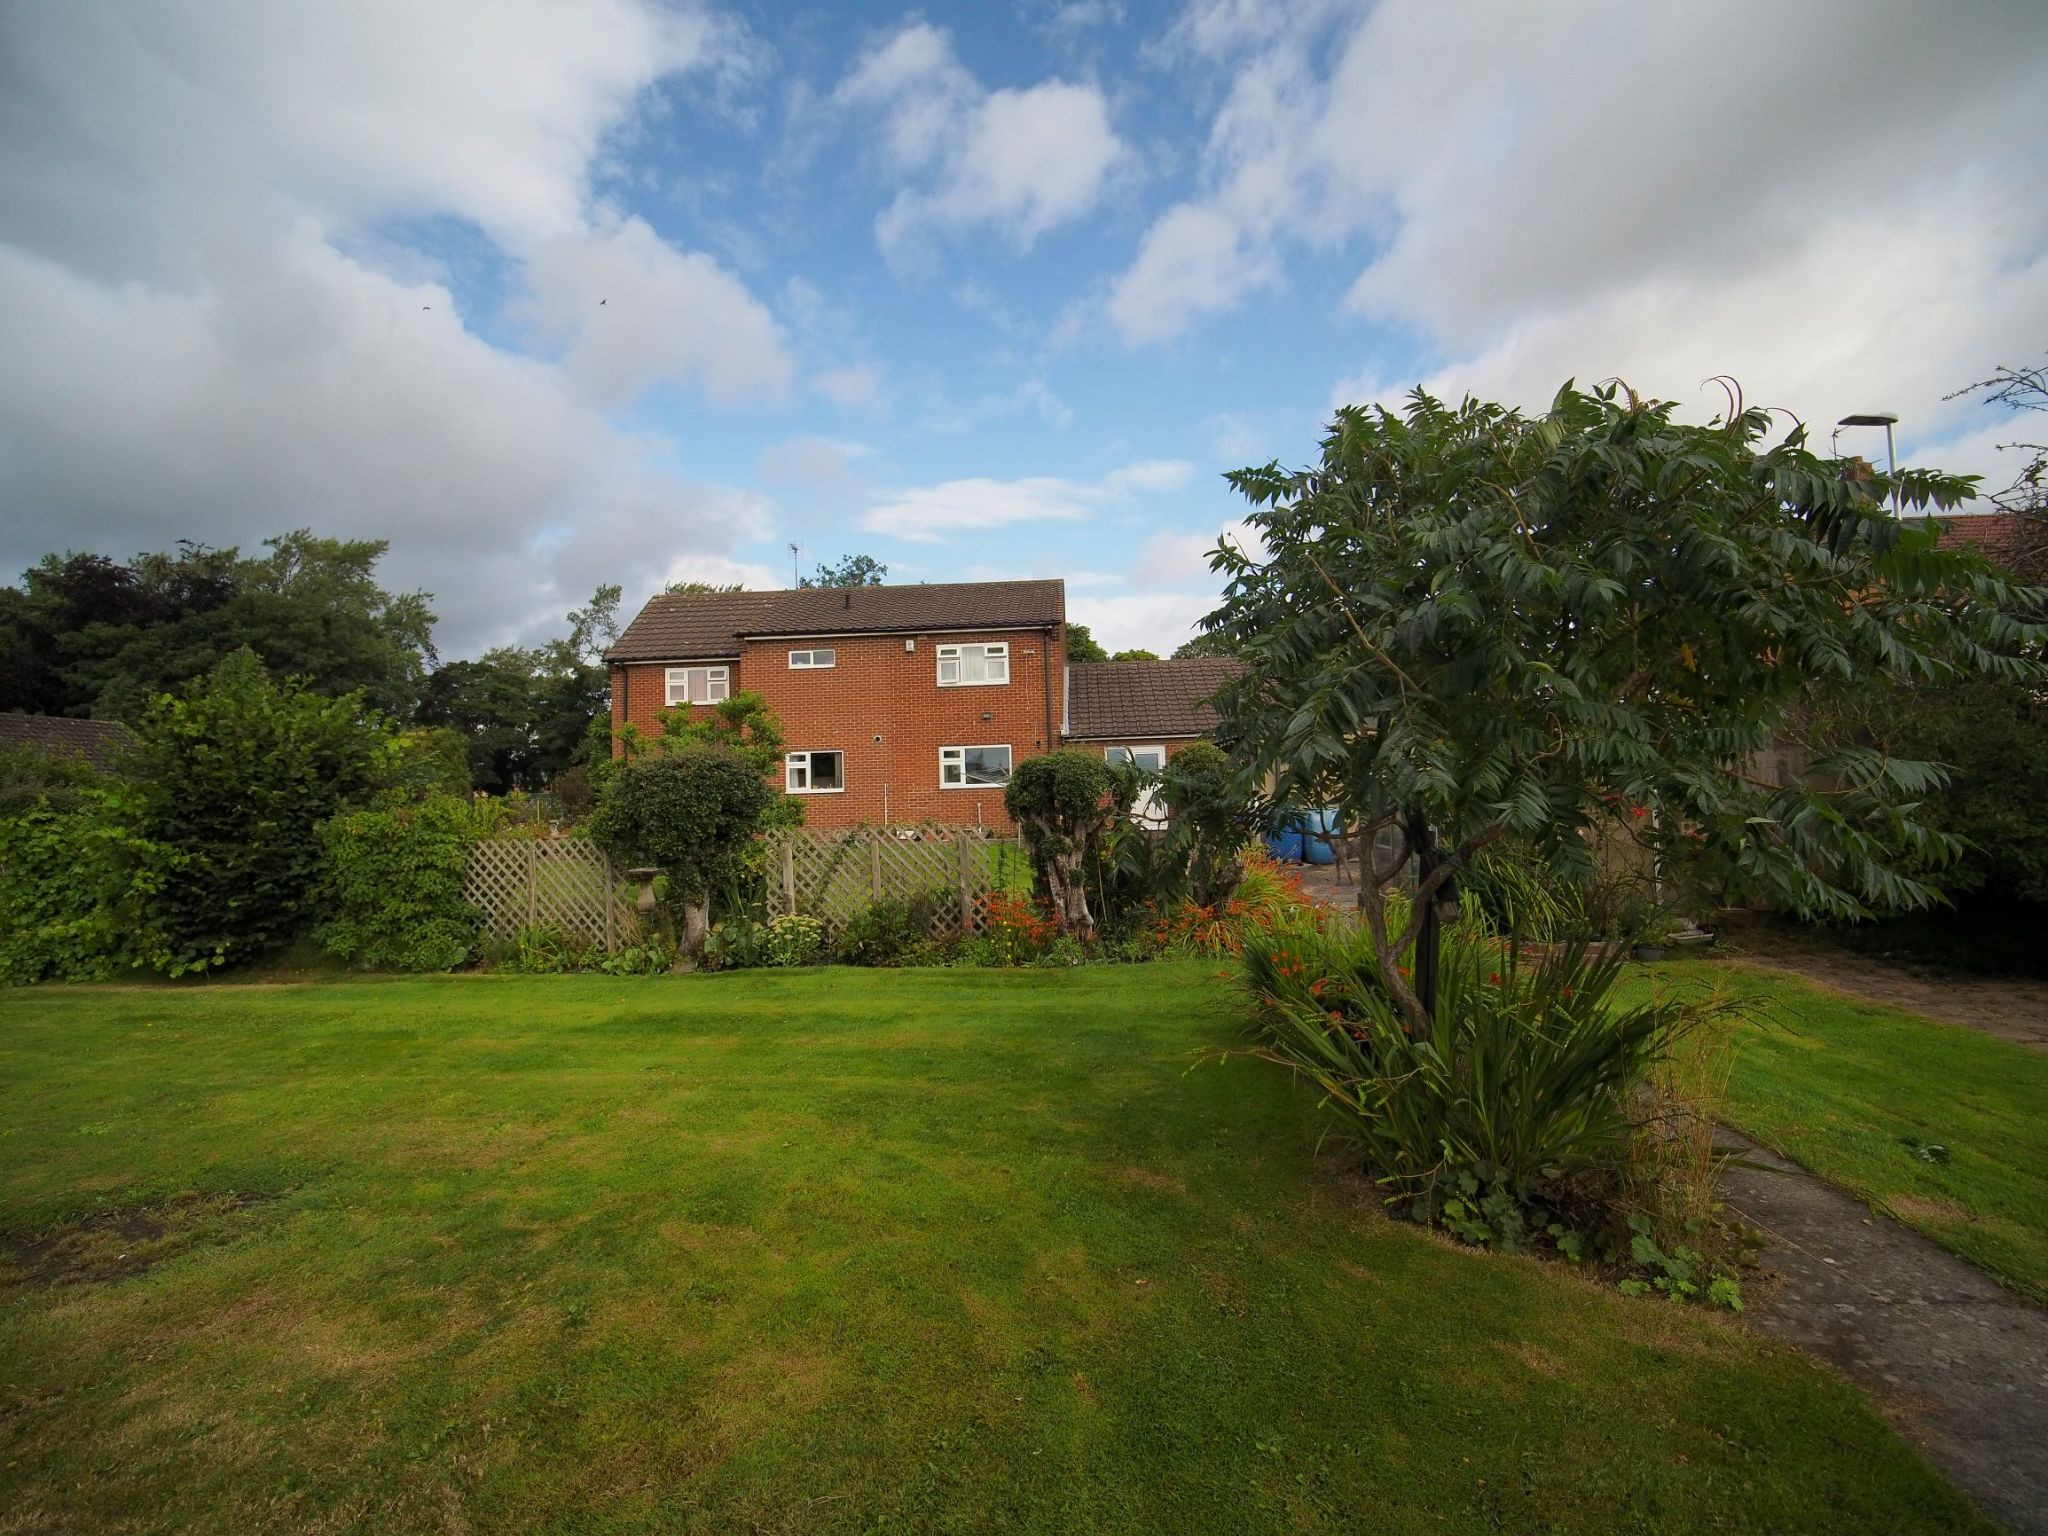 4 bedroom detached house For Sale in Willington - From the garden.